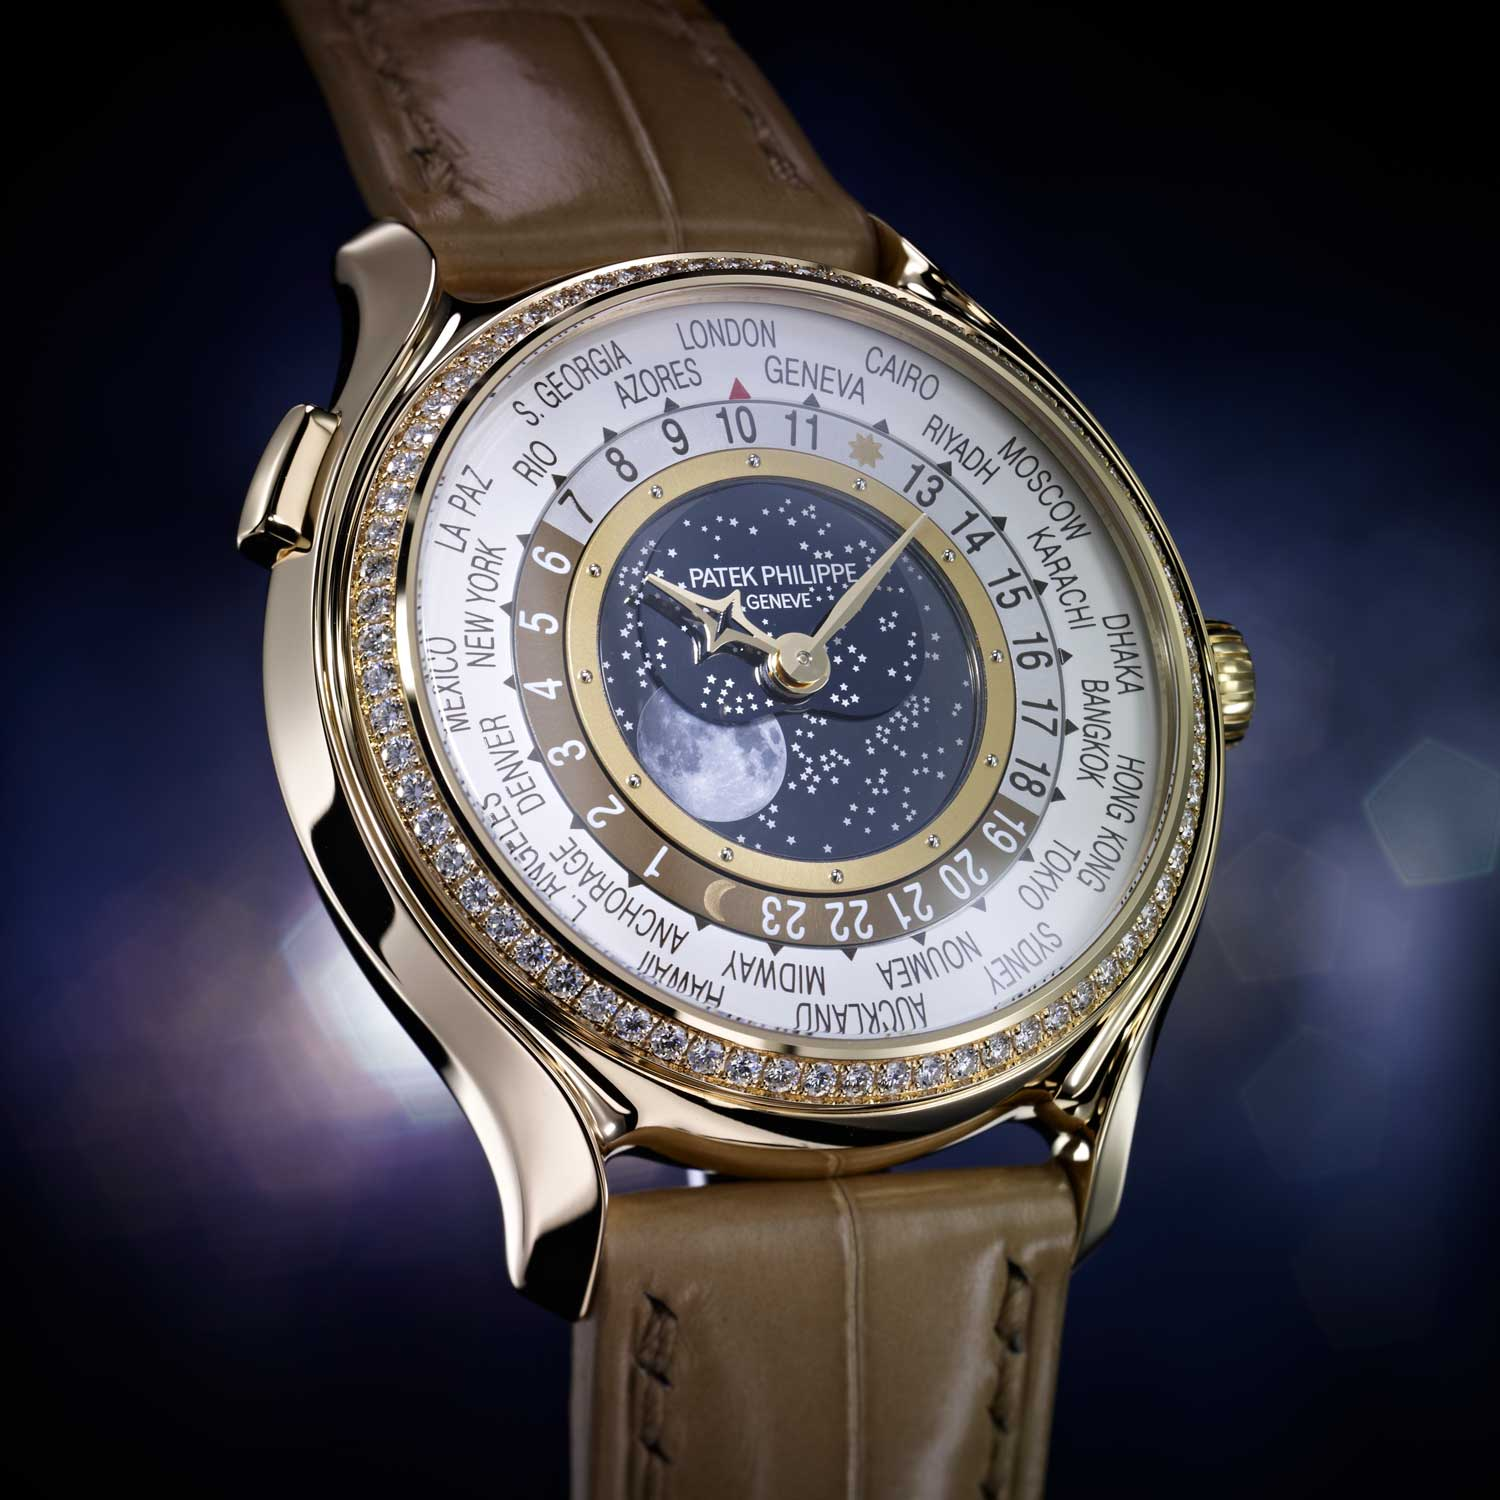 Launched as part of Patek Philippe's 175th anniversary celebrations, the ref. 7175 had a 38mm rose gold case and its dial presented a hyper realistic moonphase (Image: Patek Philippe)